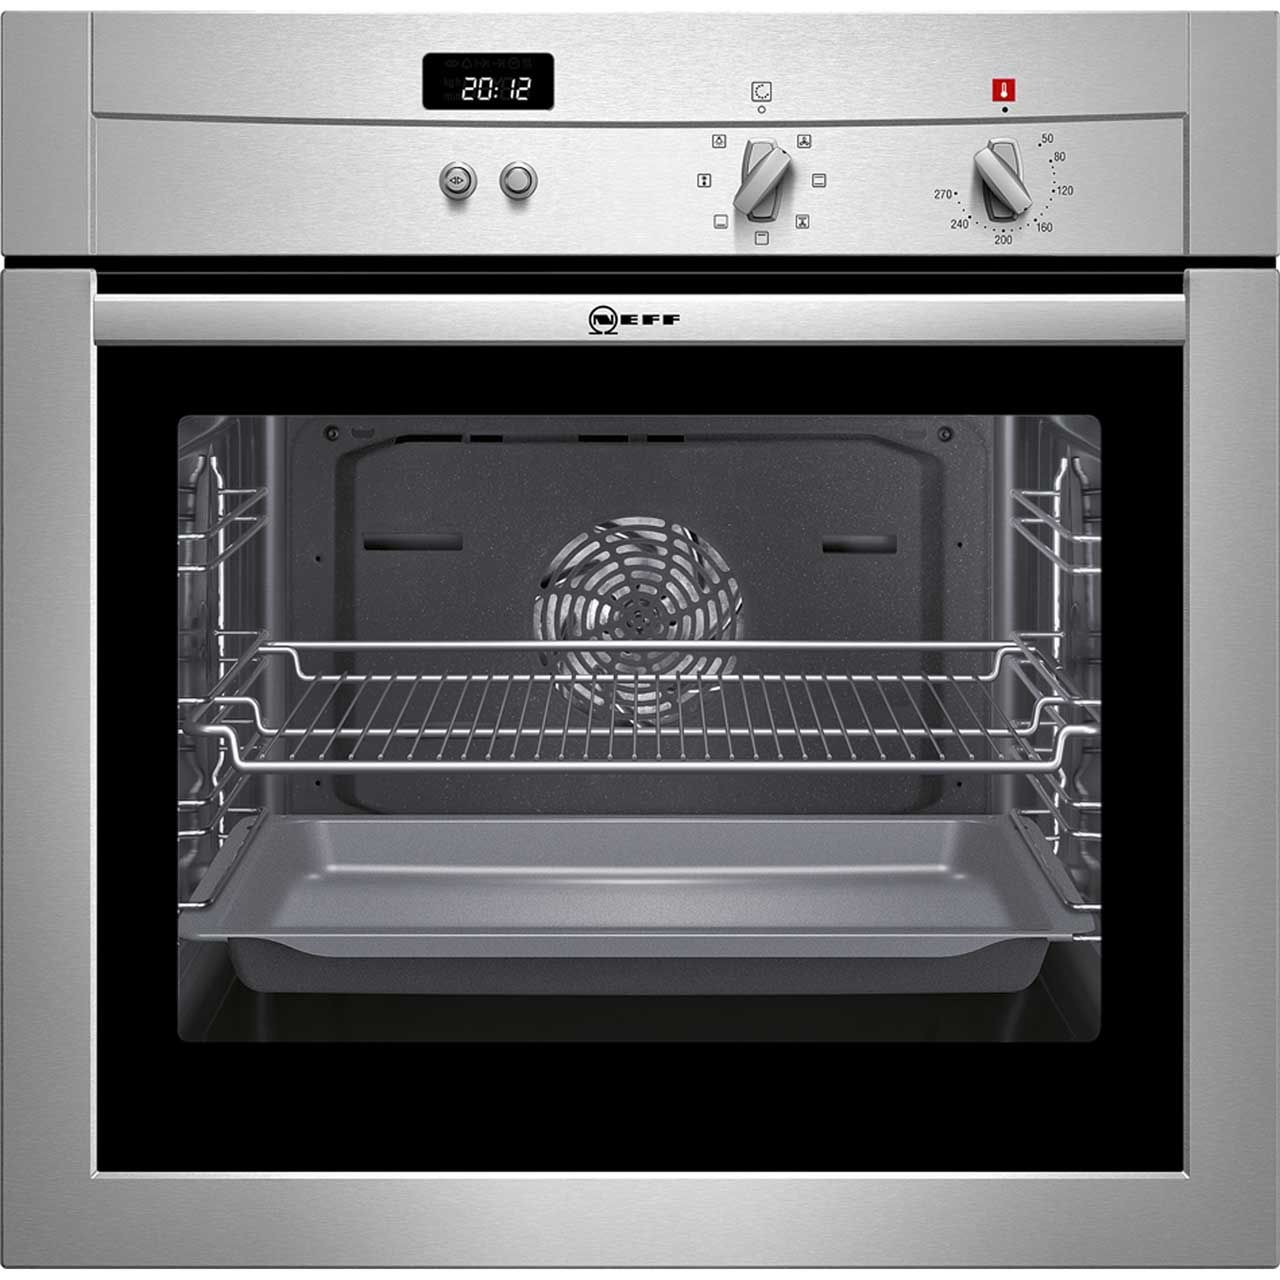 Uncategorized Neff Kitchen Appliances neff b14m42n3gb built in electric single oven stainless steel ovenkitchen appliancesovensbuilt